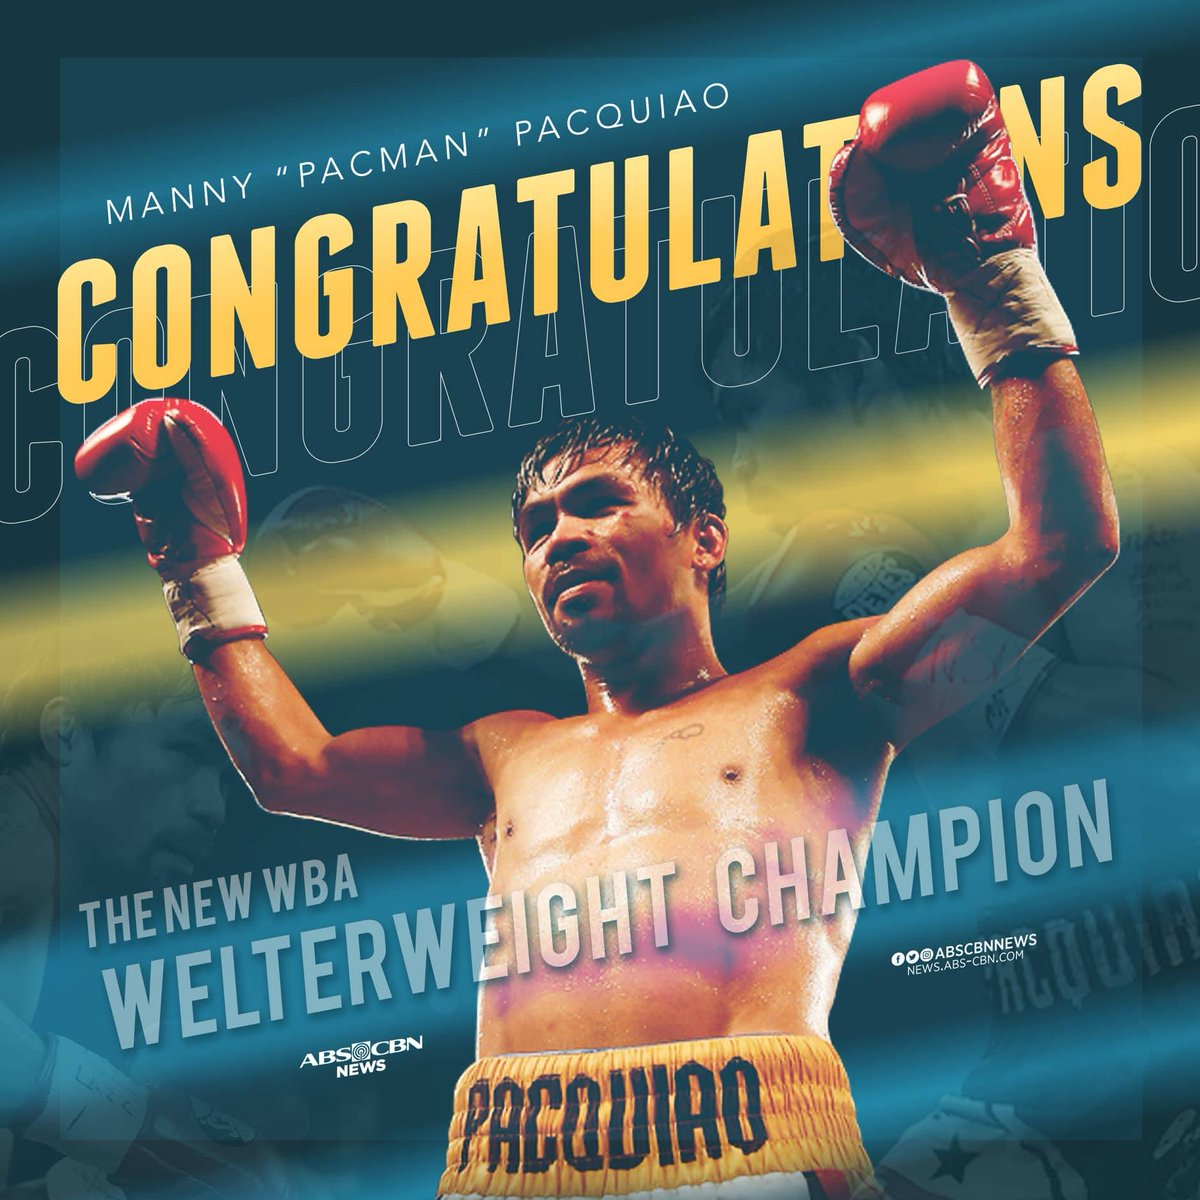 Congratulations, Manny Pacquiao!  The new World Boxing Association welterweight champion! #PacquiaoMatthysse